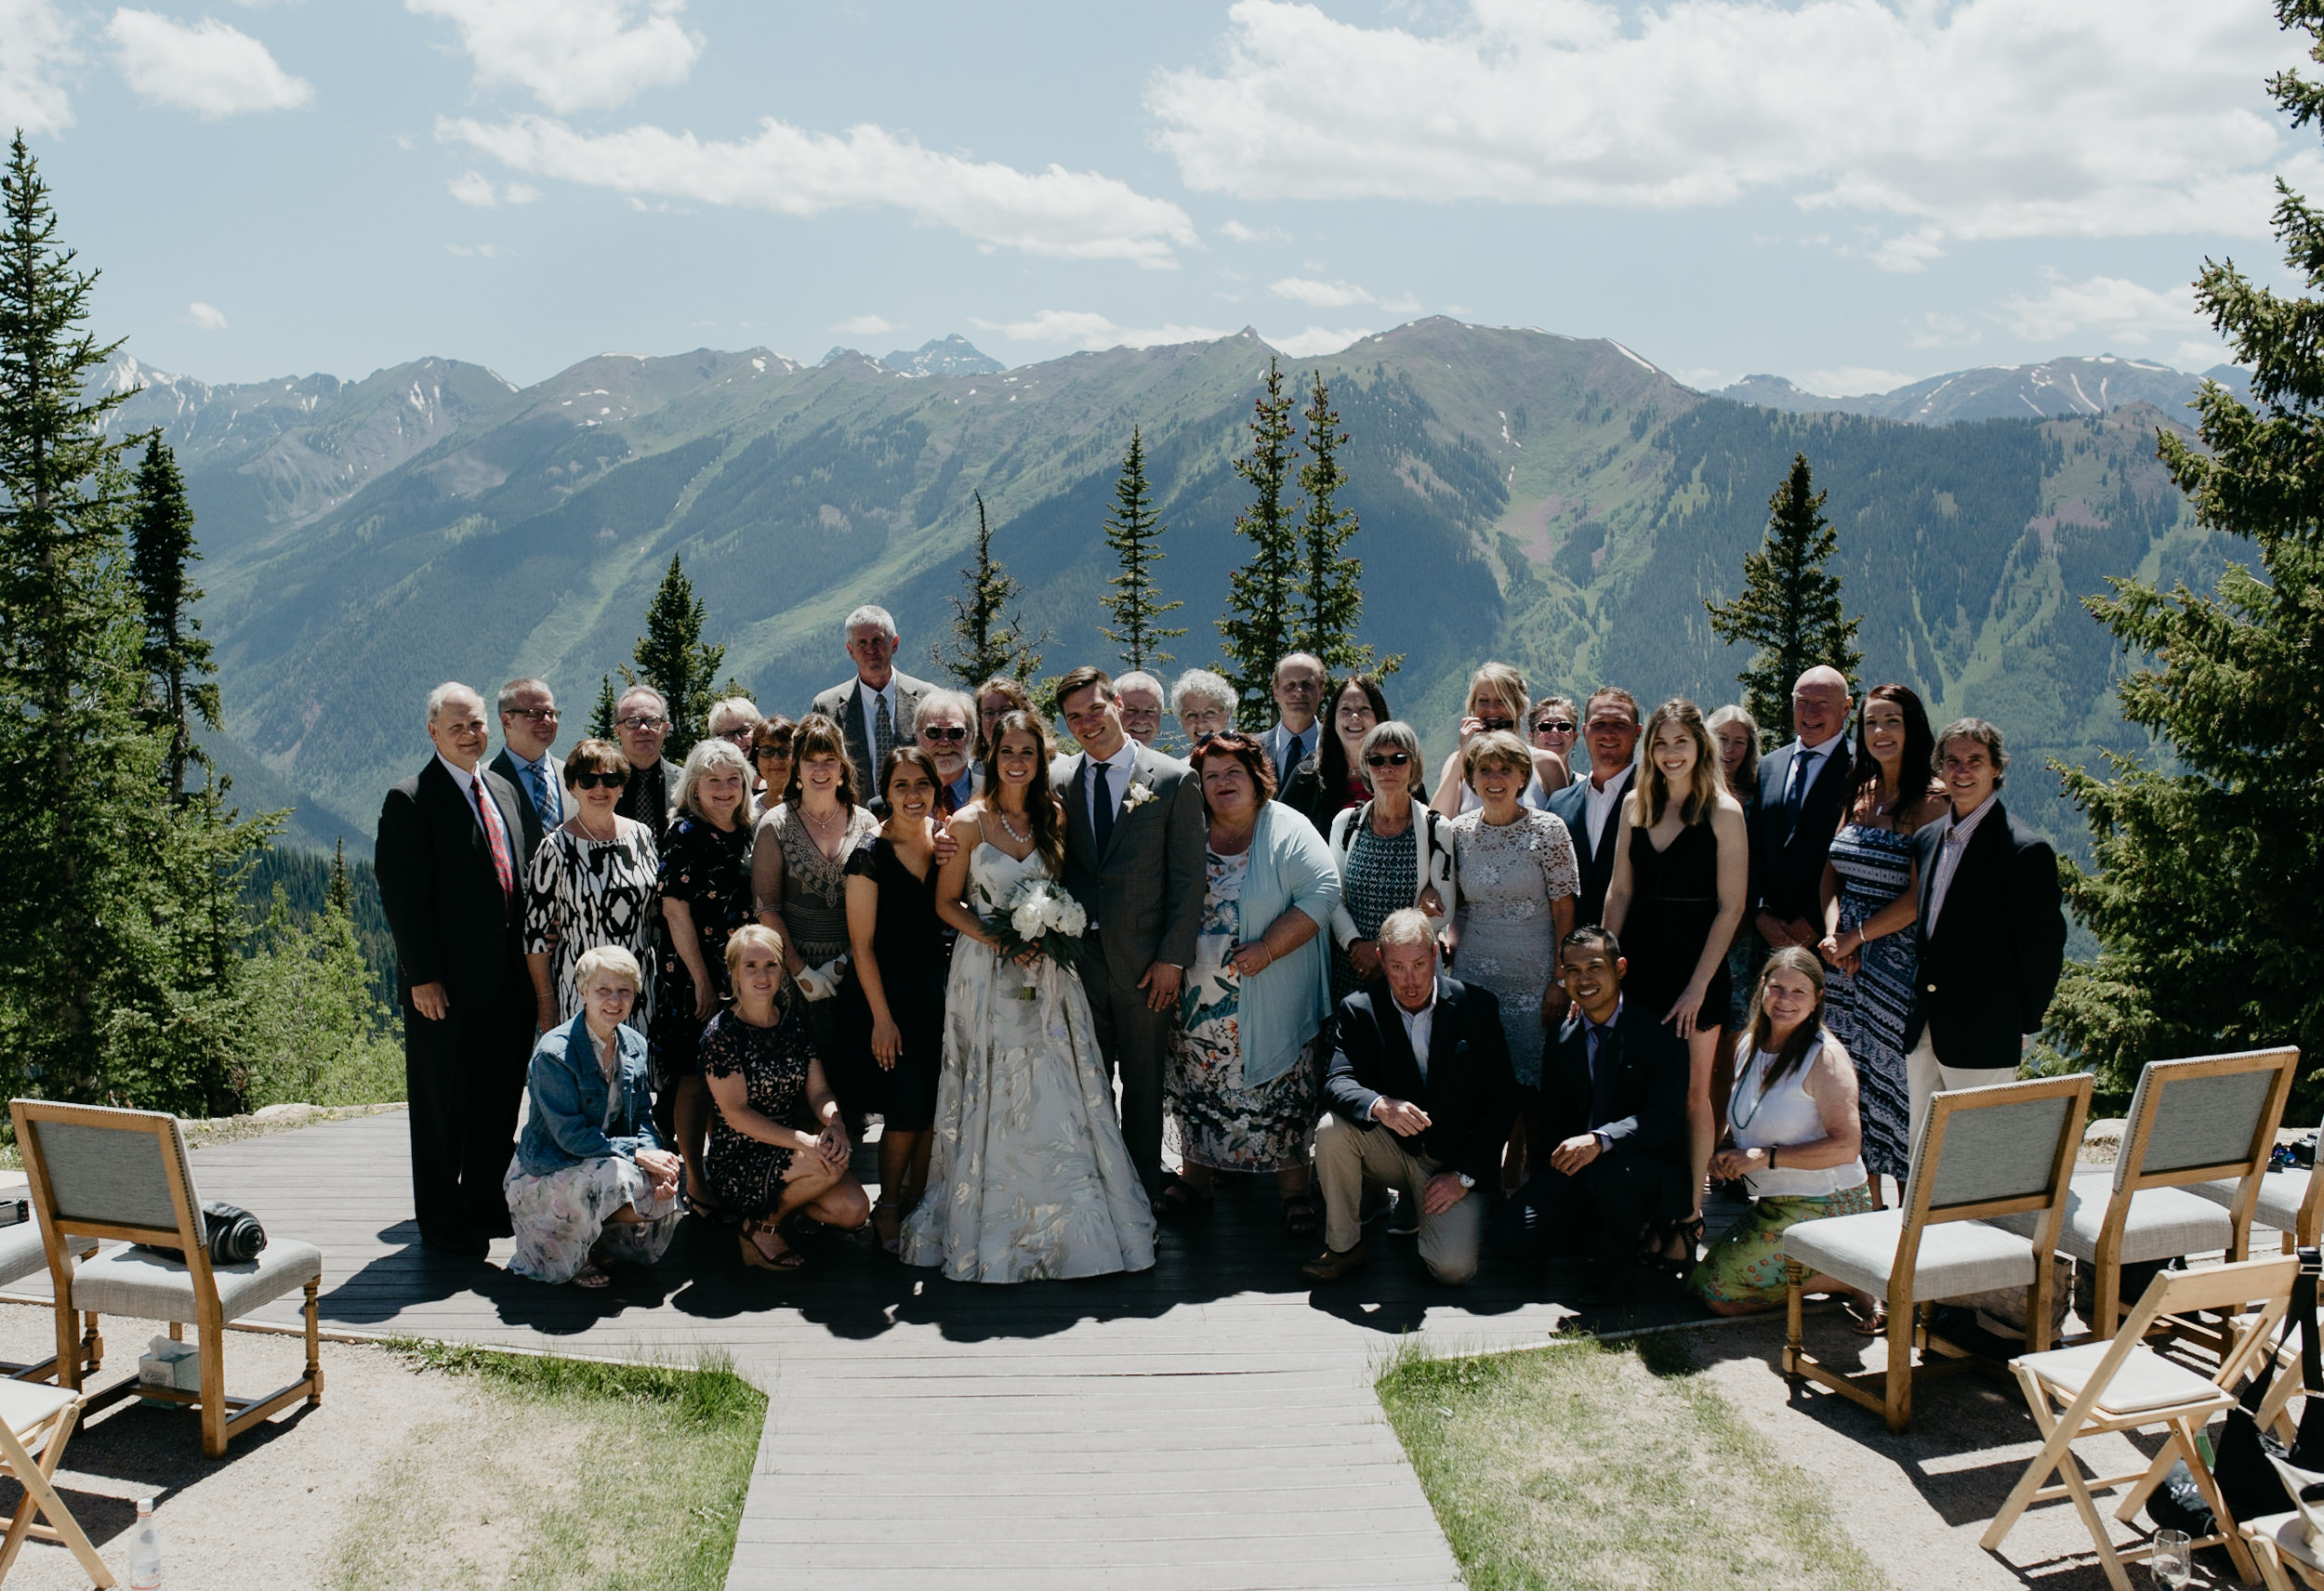 Group photo of wedding at The Little Nell